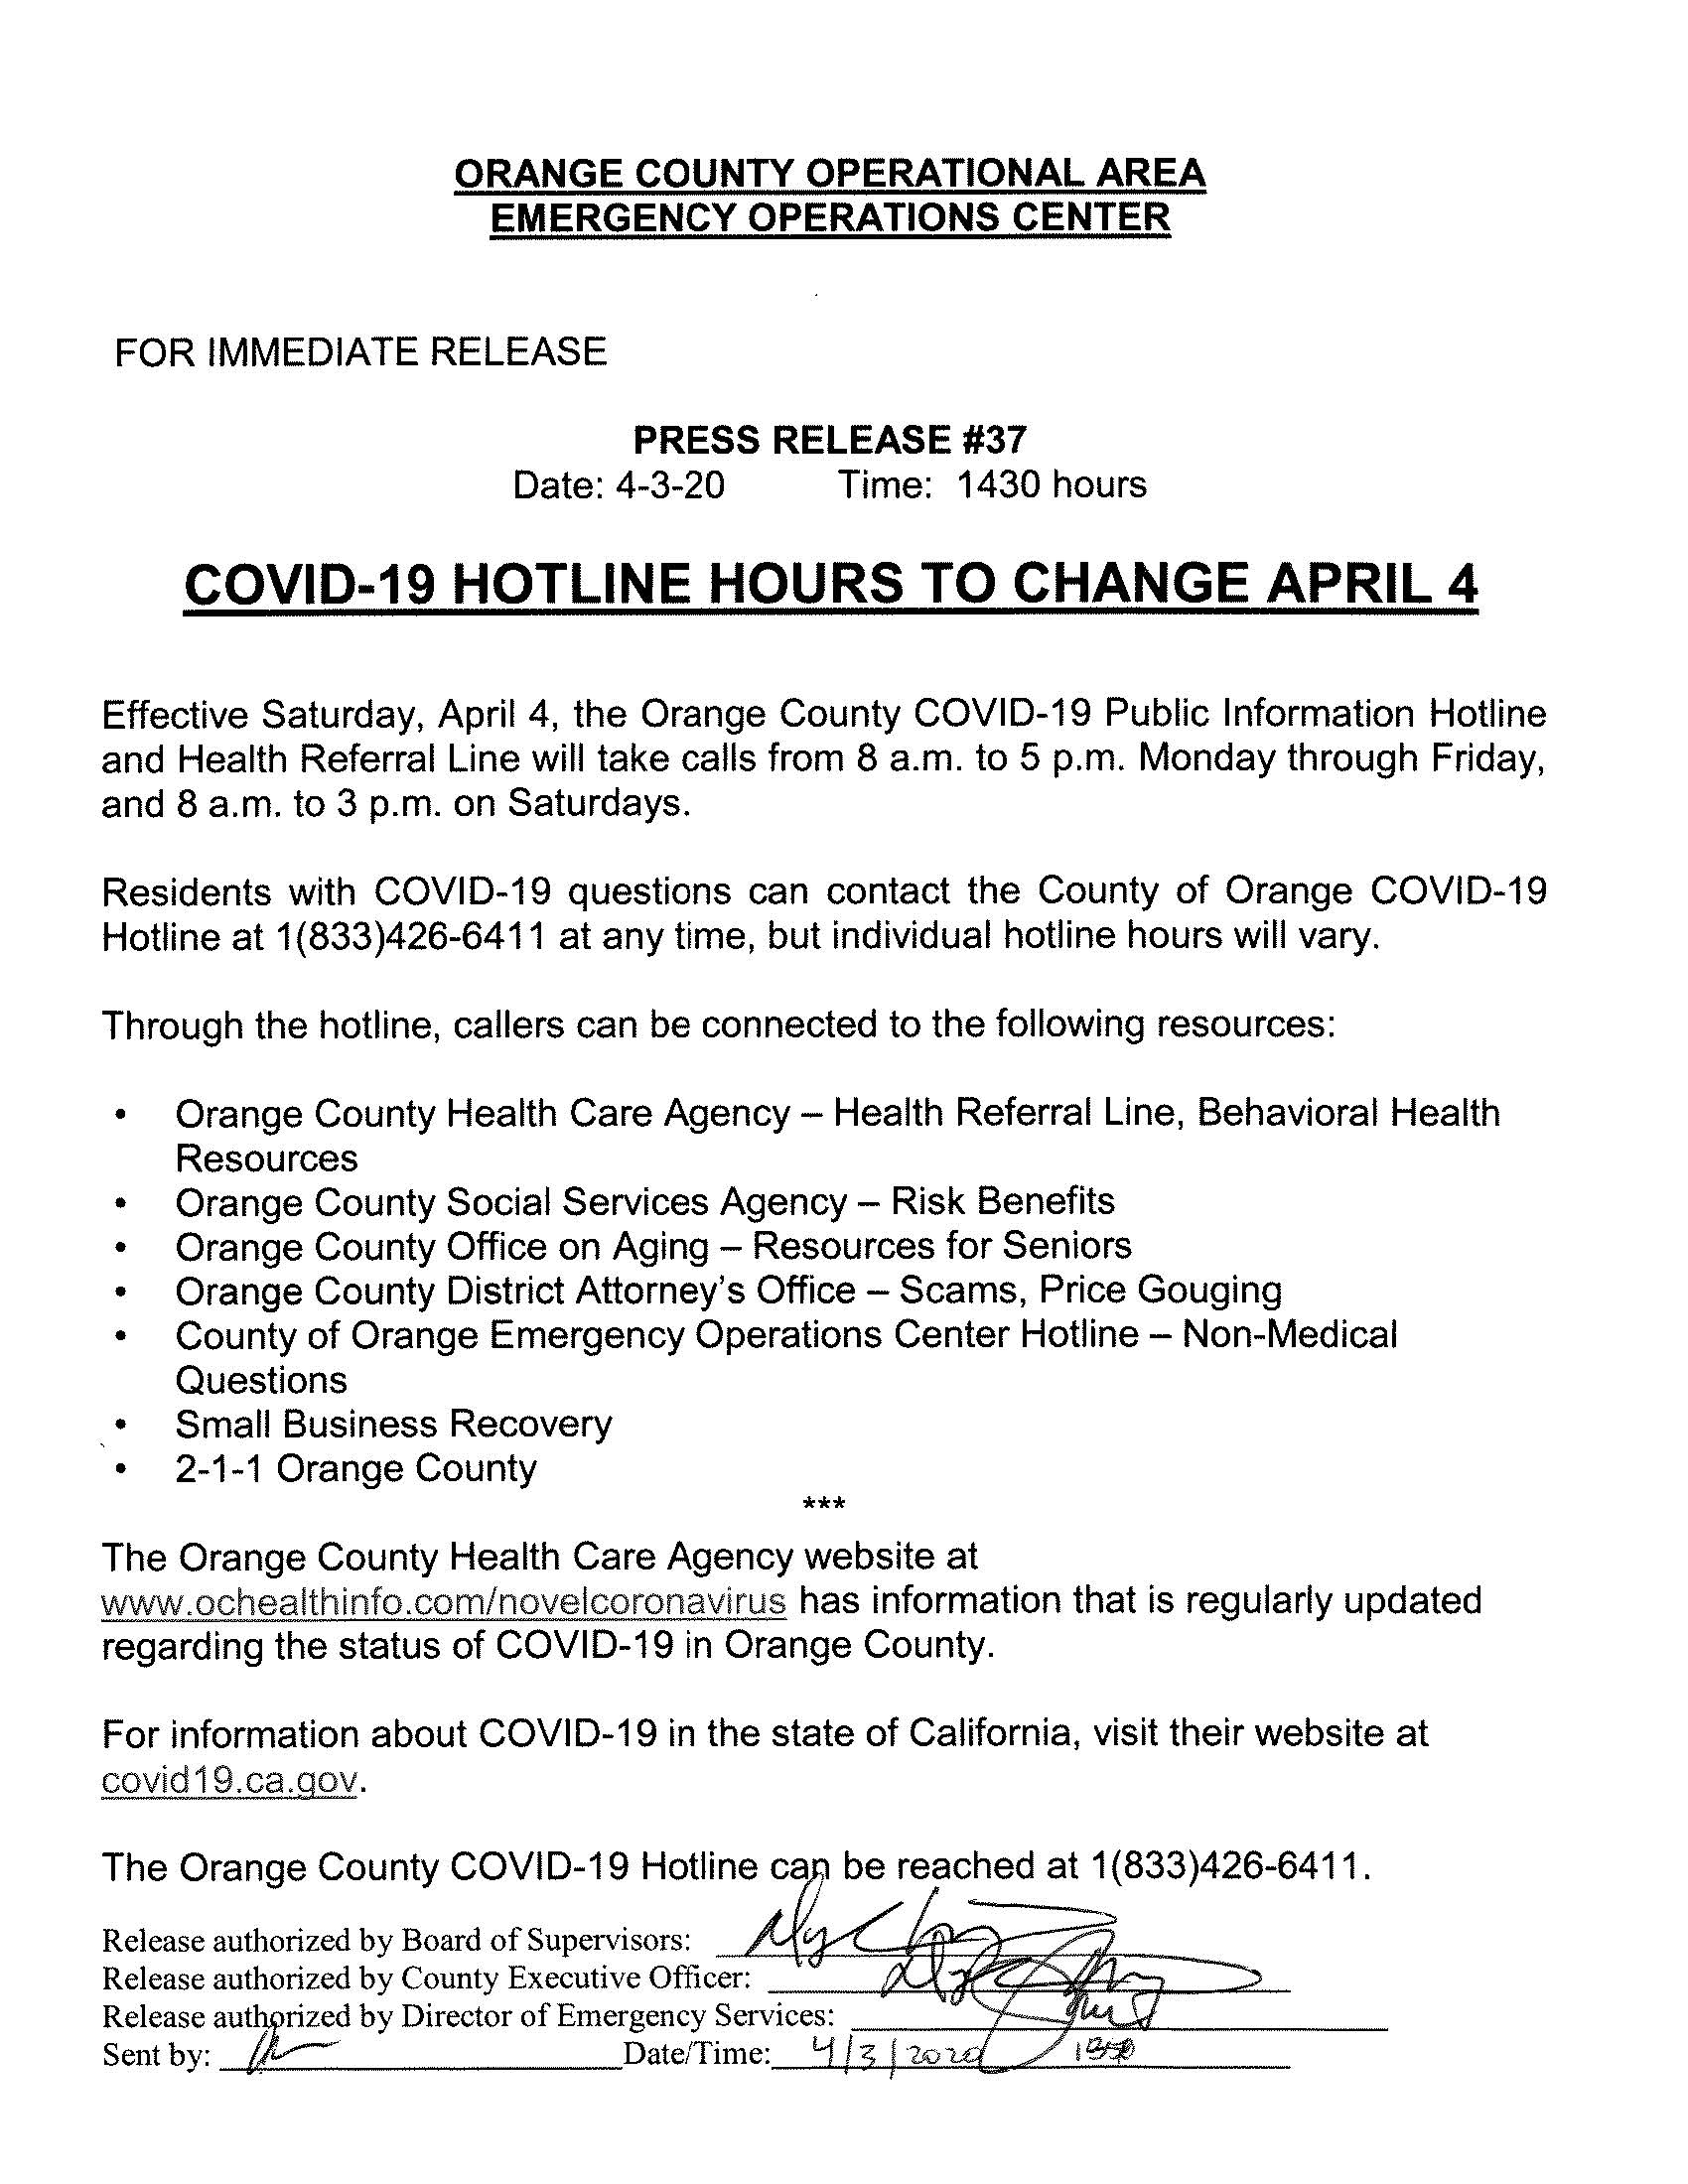 EOC Press Release 37 - COVID-19 Hotline hours to change April 4